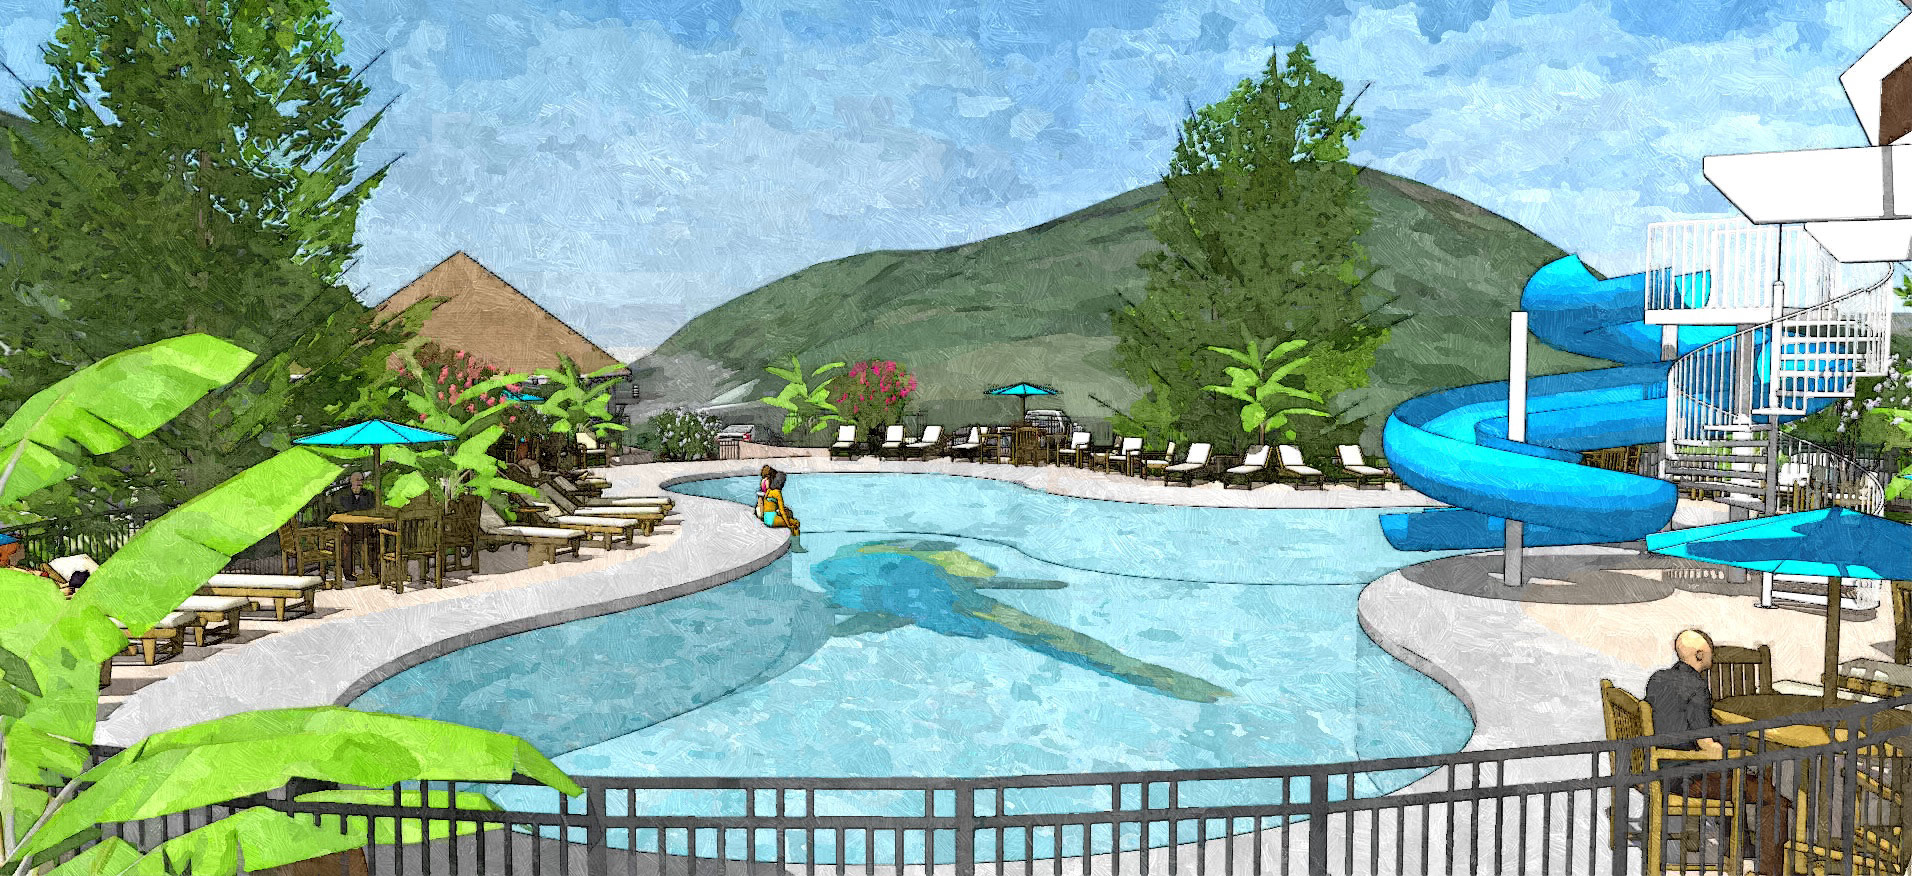 Pool View – Margaritaville Resort in the Smokies